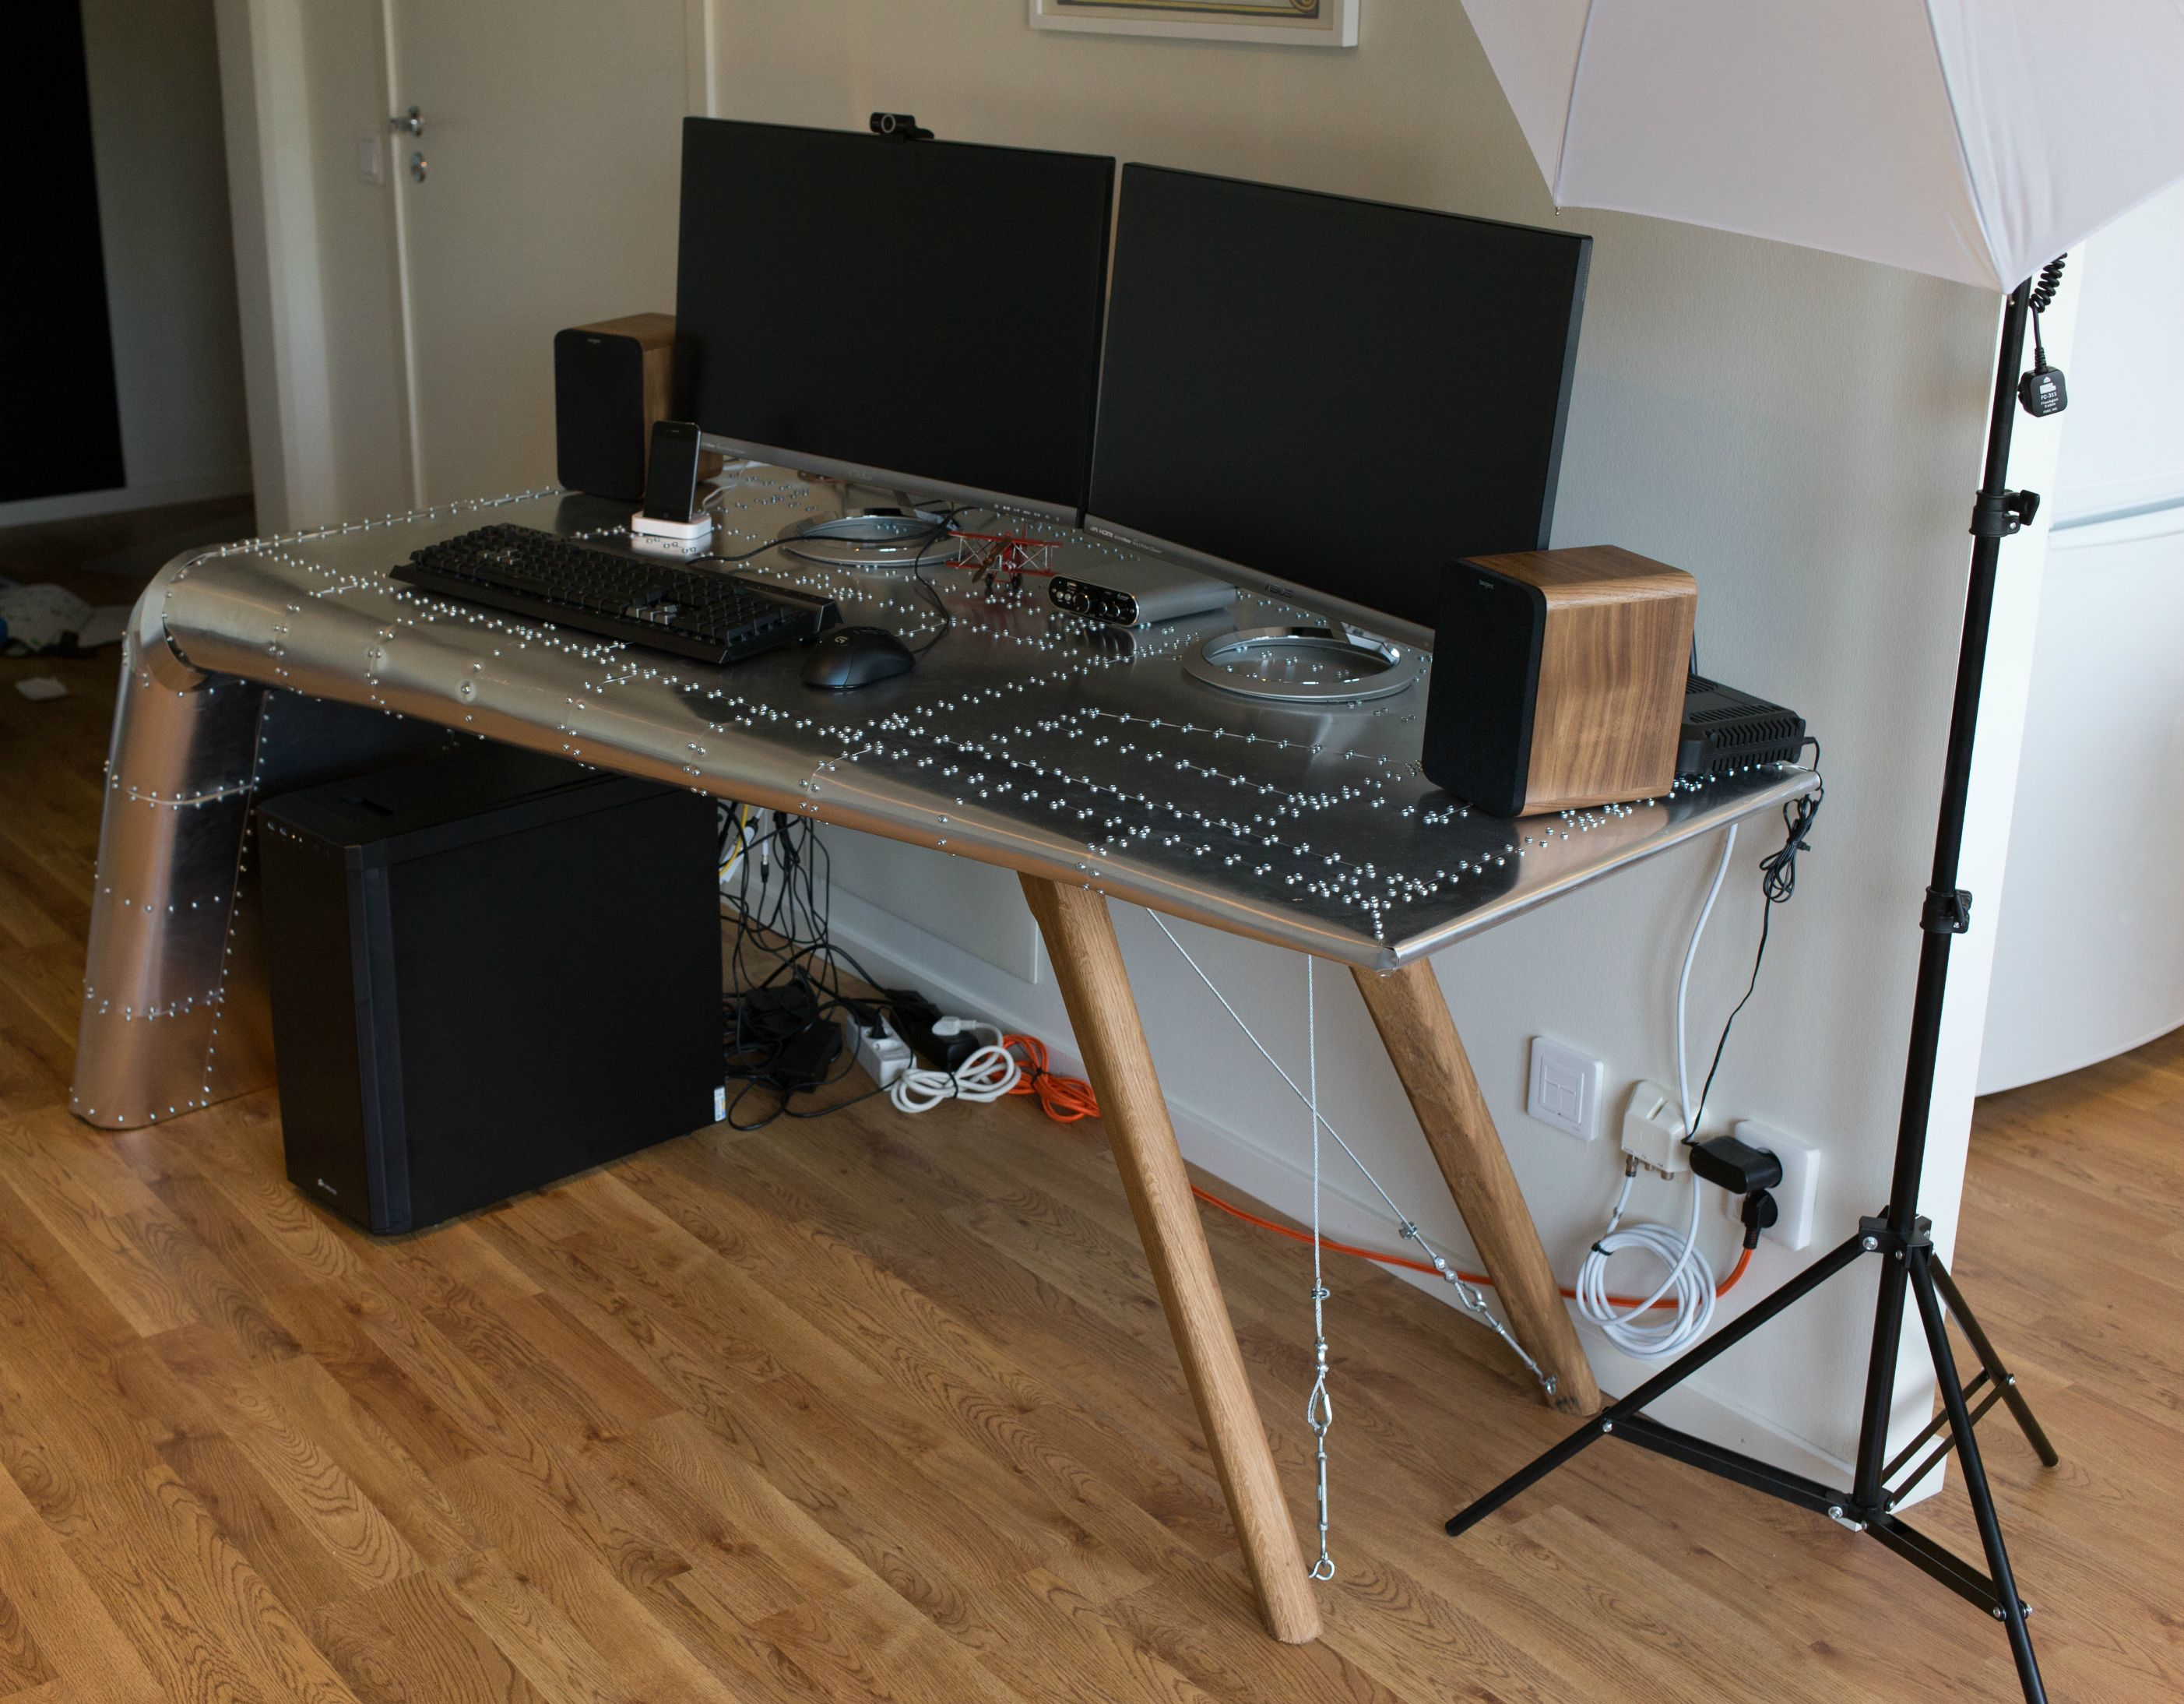 Incredible Aviation-Themed Desk